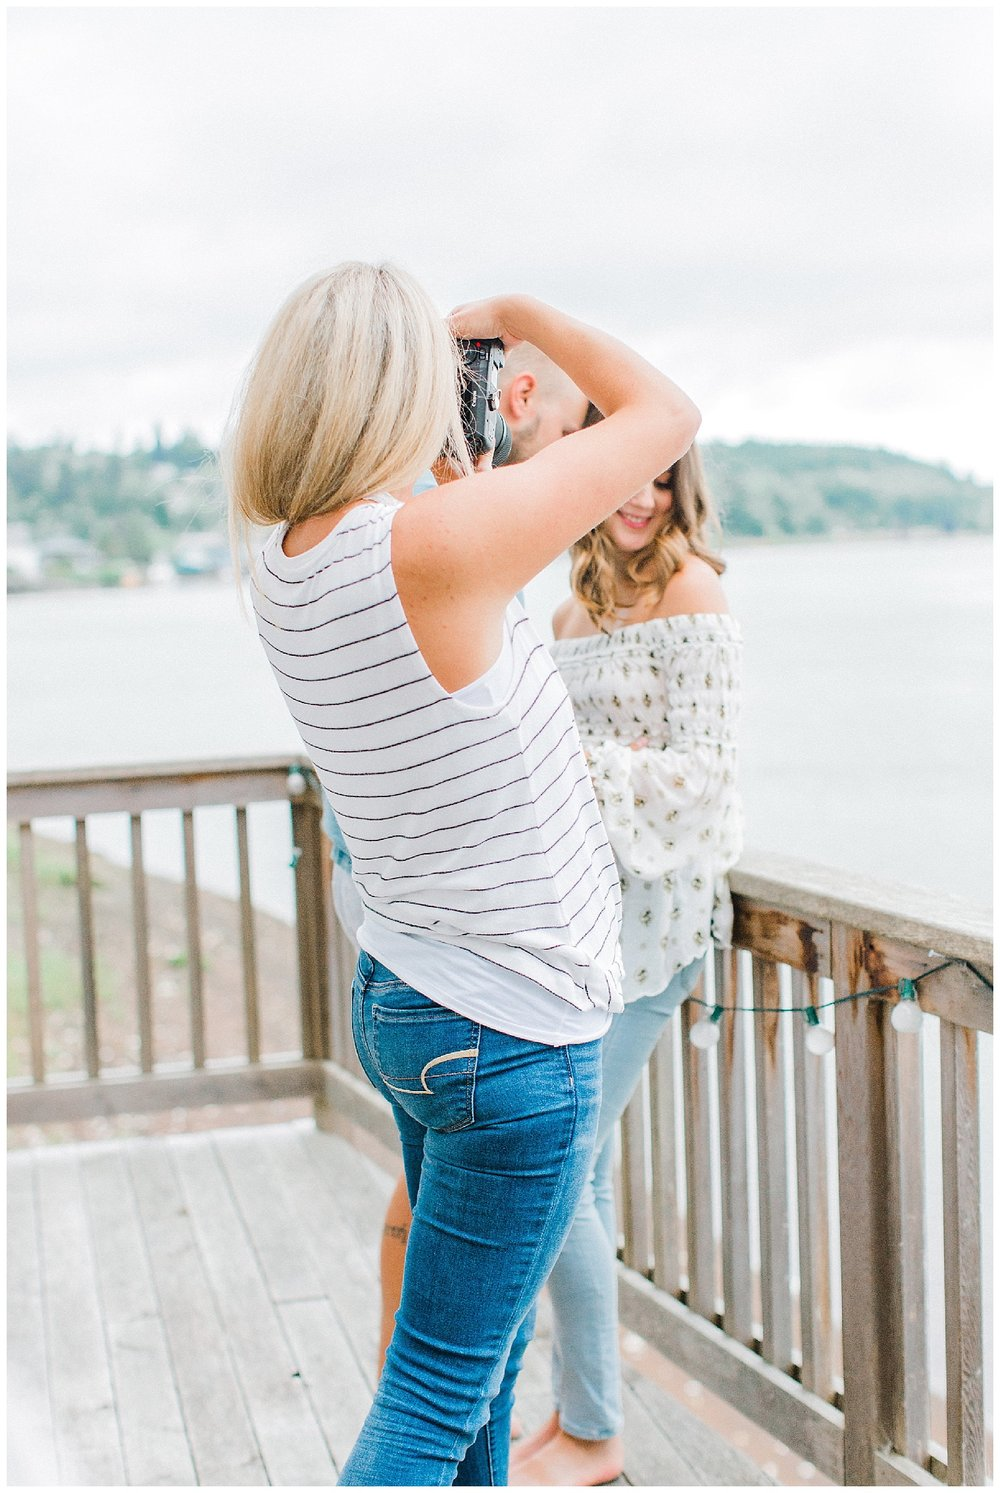 The Most Perfect In Home Maternity Lifestyle Photo Session | Pregnancy Goals | Emma Rose Company Seattle and Portland Wedding and Potrait Photographer | Dream Chasers Workshop_0005.jpg